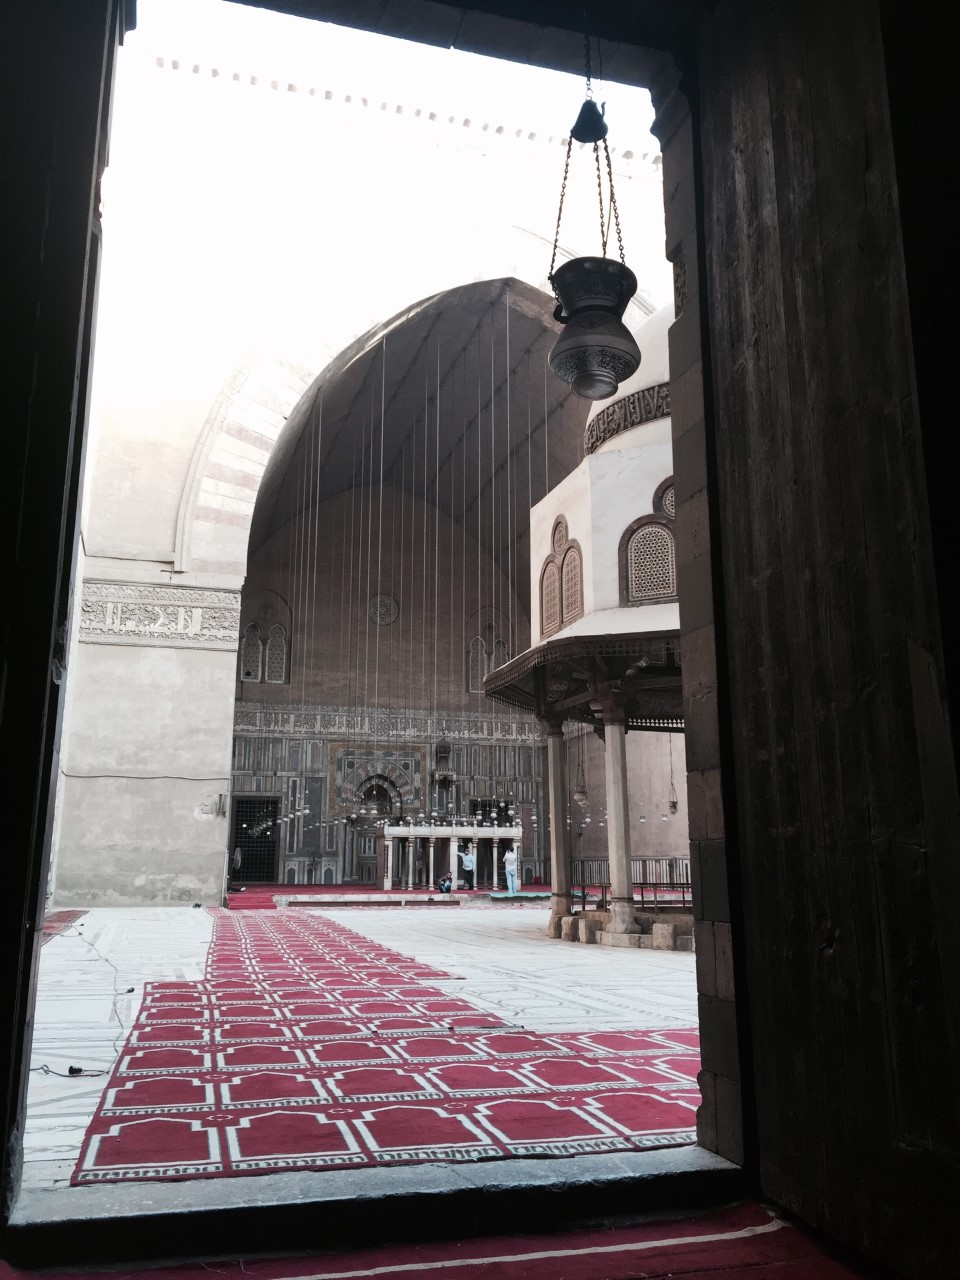 SULTAN HASSAN MOSQUE - A mosque designed to include schools for all four of the Sunnischools of thought:Shafi'i,Maliki,Hanafiand Hanbali.